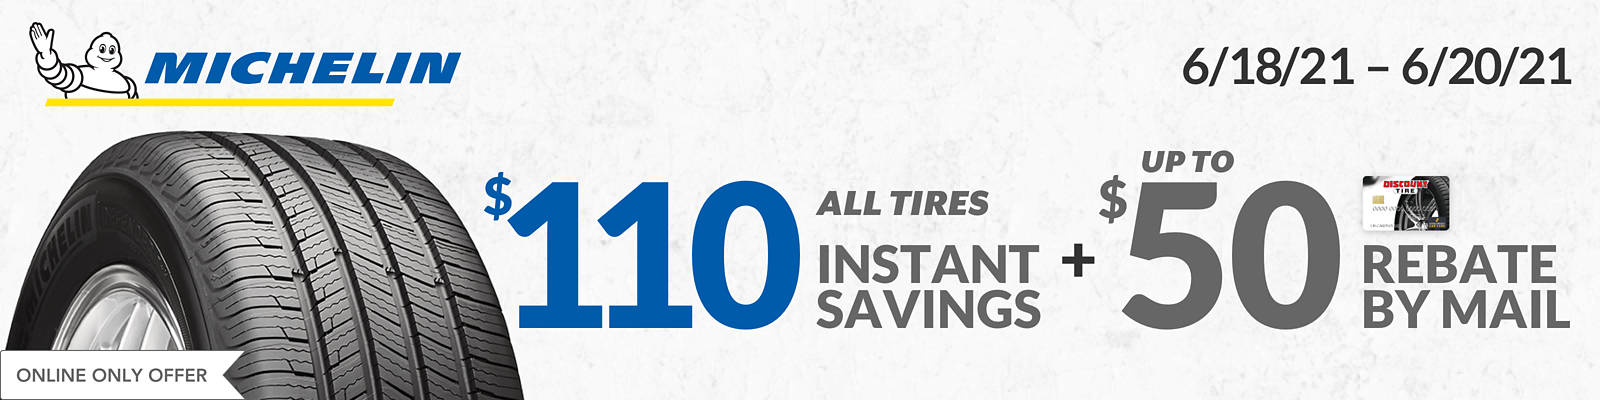 michelin-110-instant-50-cc-promo-header-DT-18-20